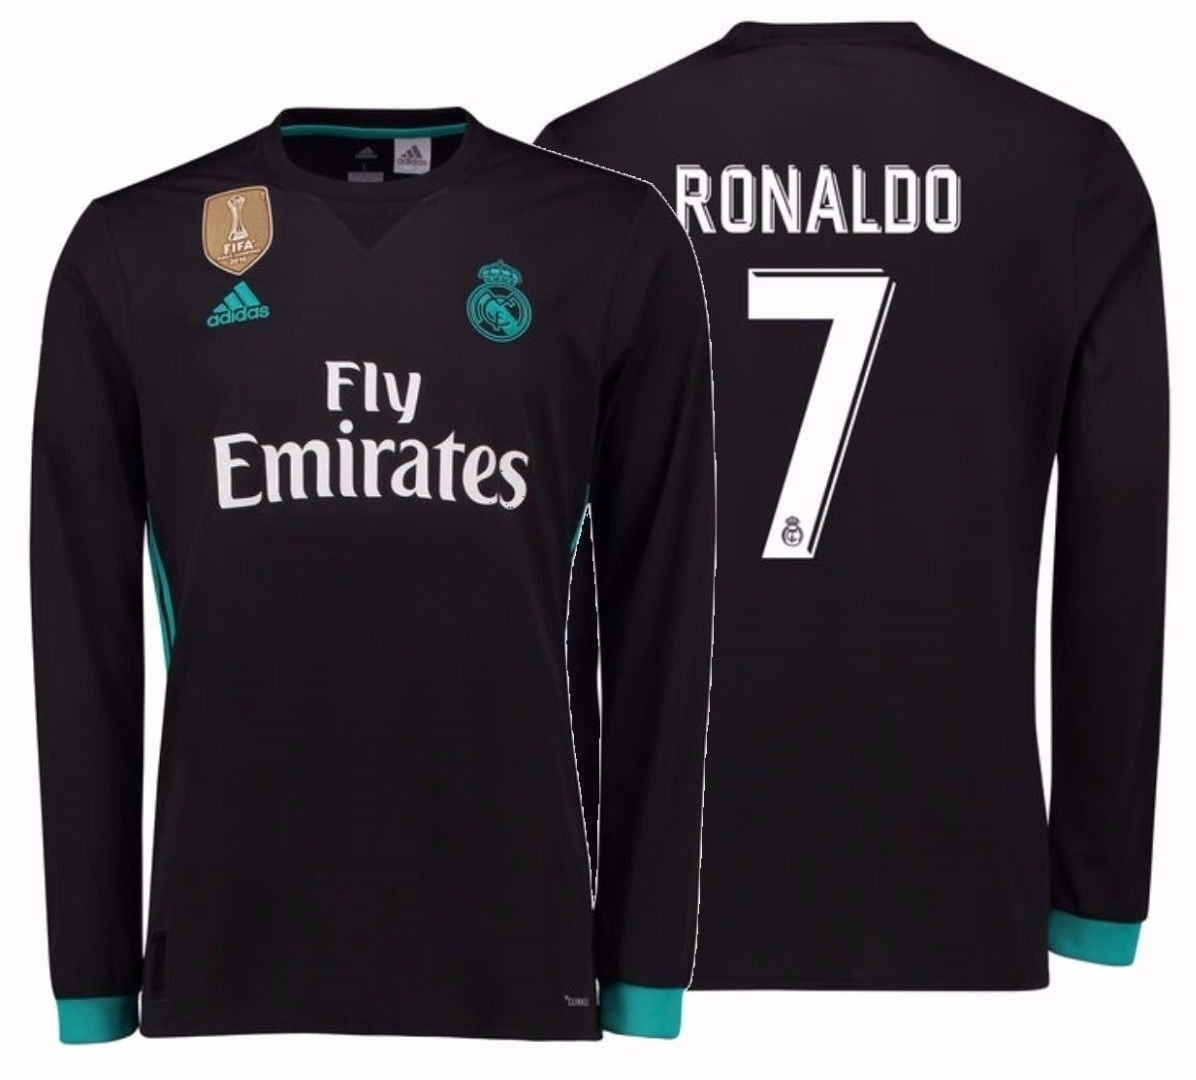 cheap for discount 006bb 4c5c7 ADIDAS CRISTIANO RONALDO REAL MADRID LONG SLEEVE AWAY JERSEY 2018/19 FIFA  PATCH from Mexibro